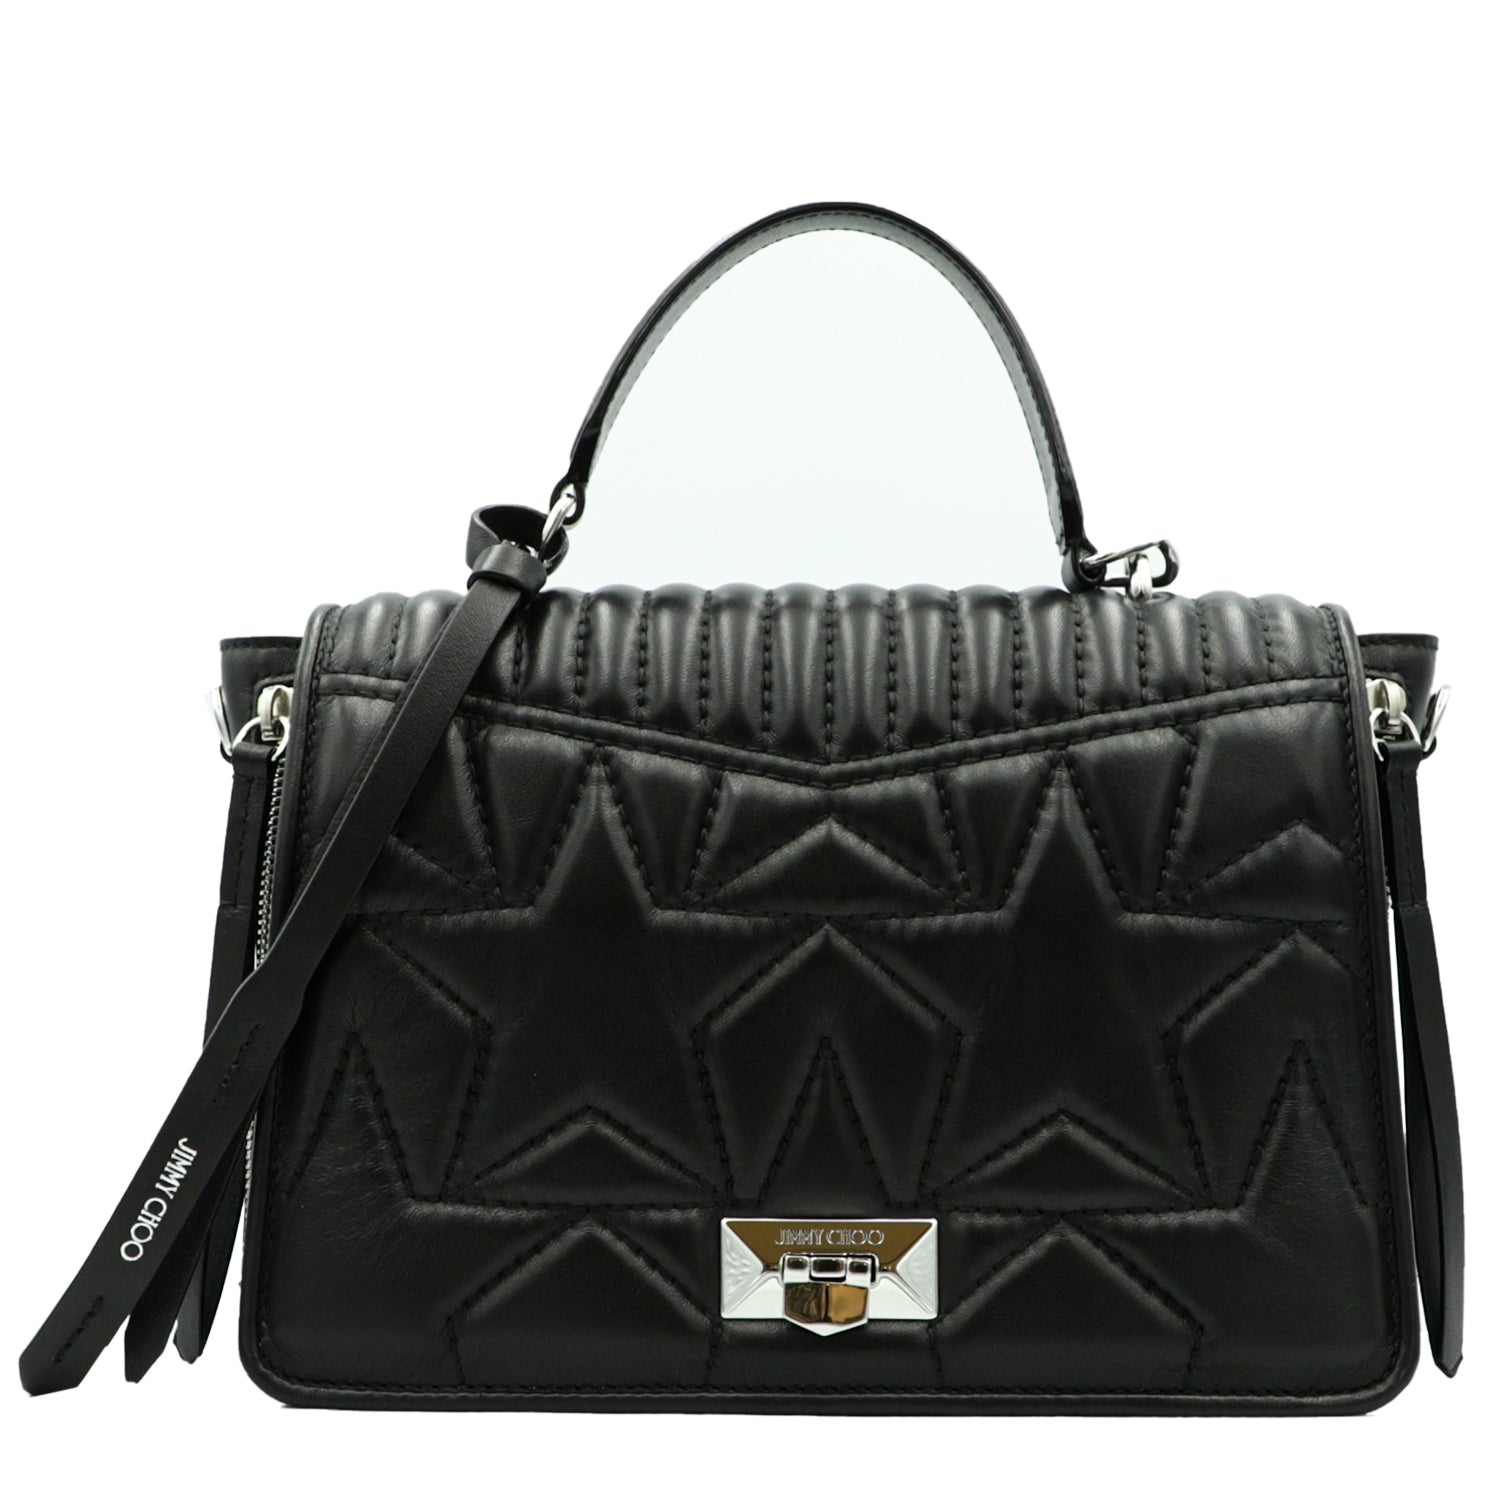 Helia Black Handbag | Shop JIMMY CHOO Online India